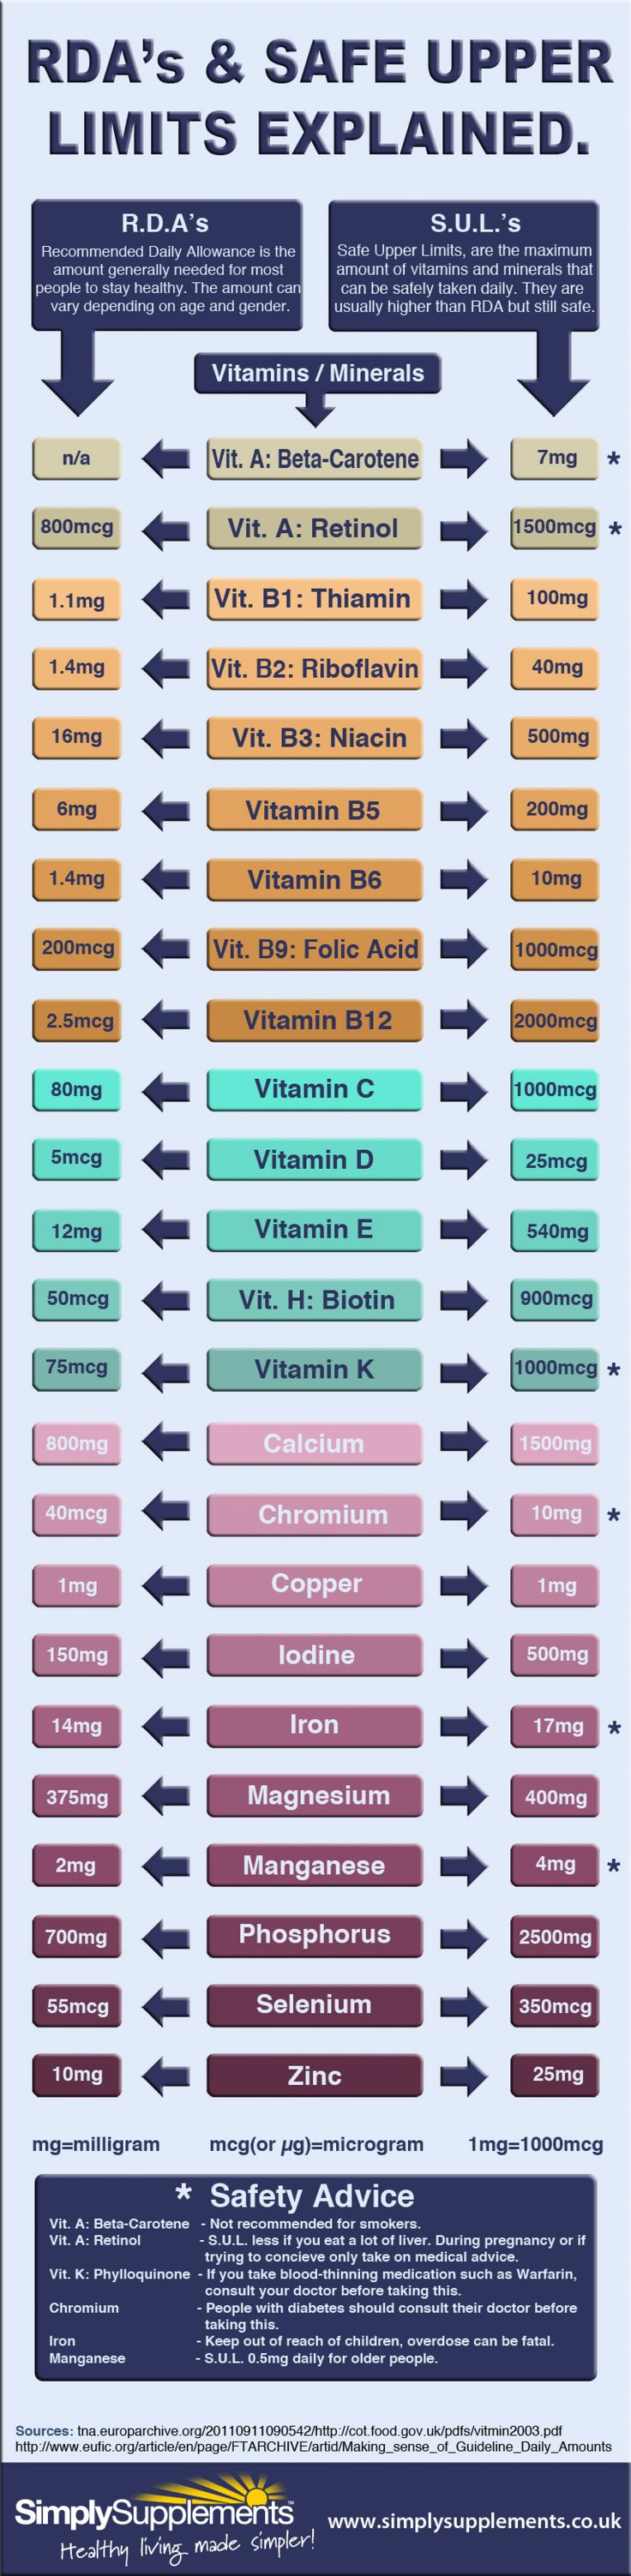 Do you know your daily recommendations for vitamins and minerals? See RDA's  Safe Upper Limits Explained